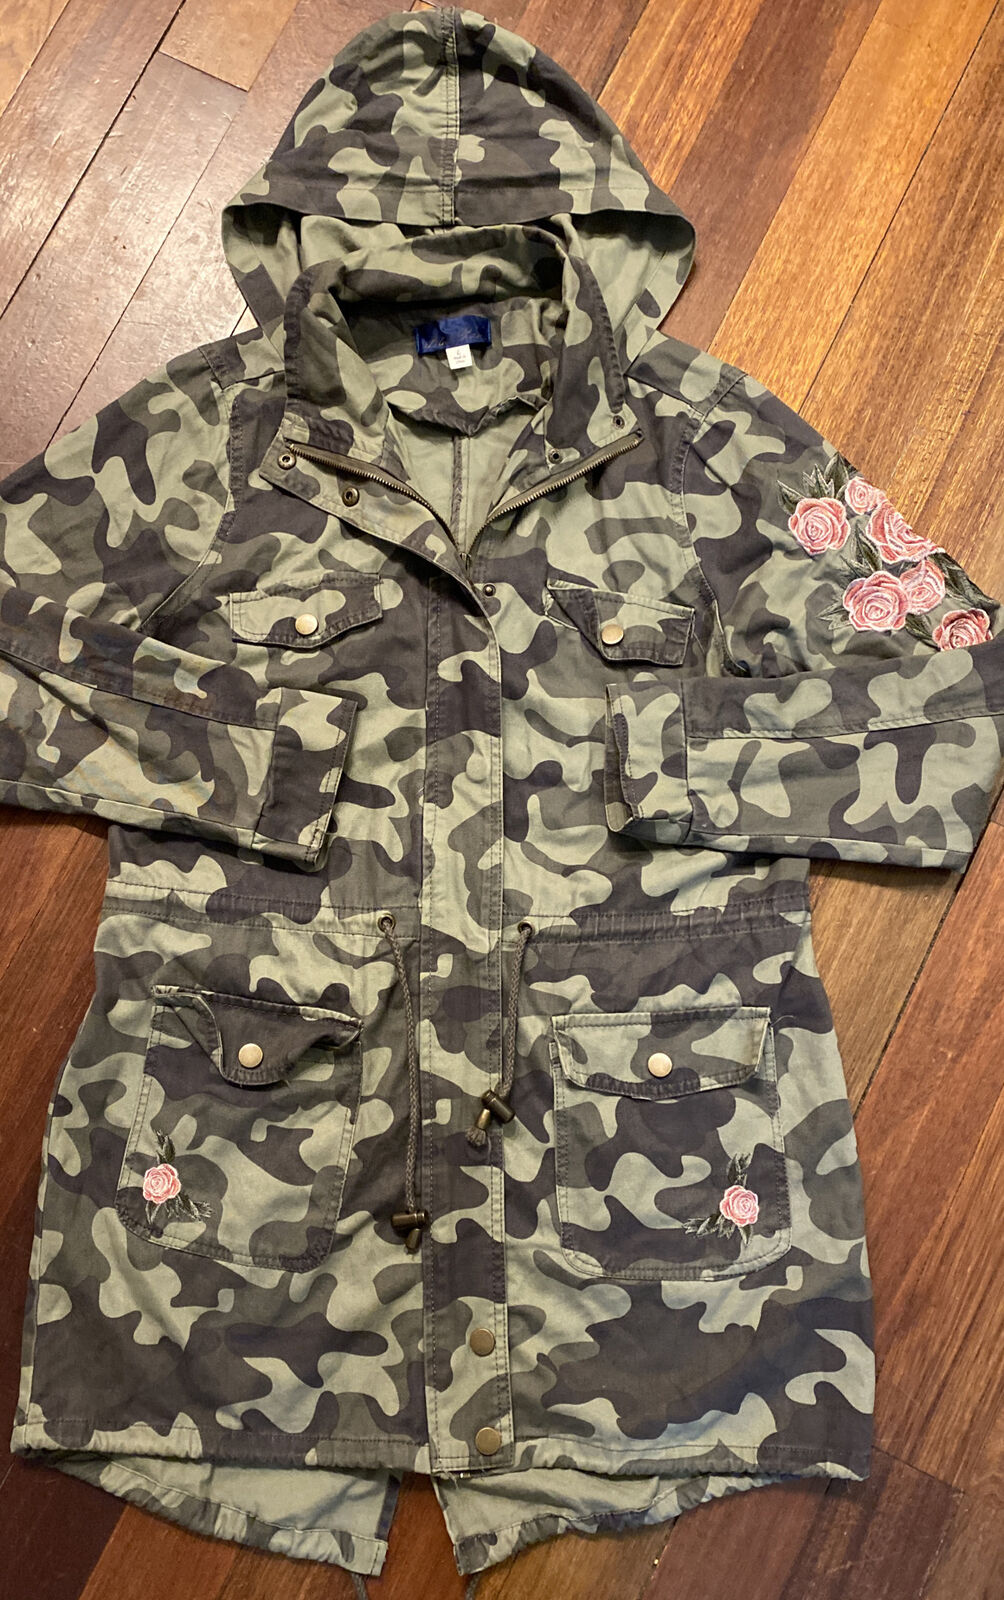 Camouflage Utility Jacket Streetwear Womens Size L Long Length Embroidered Roses